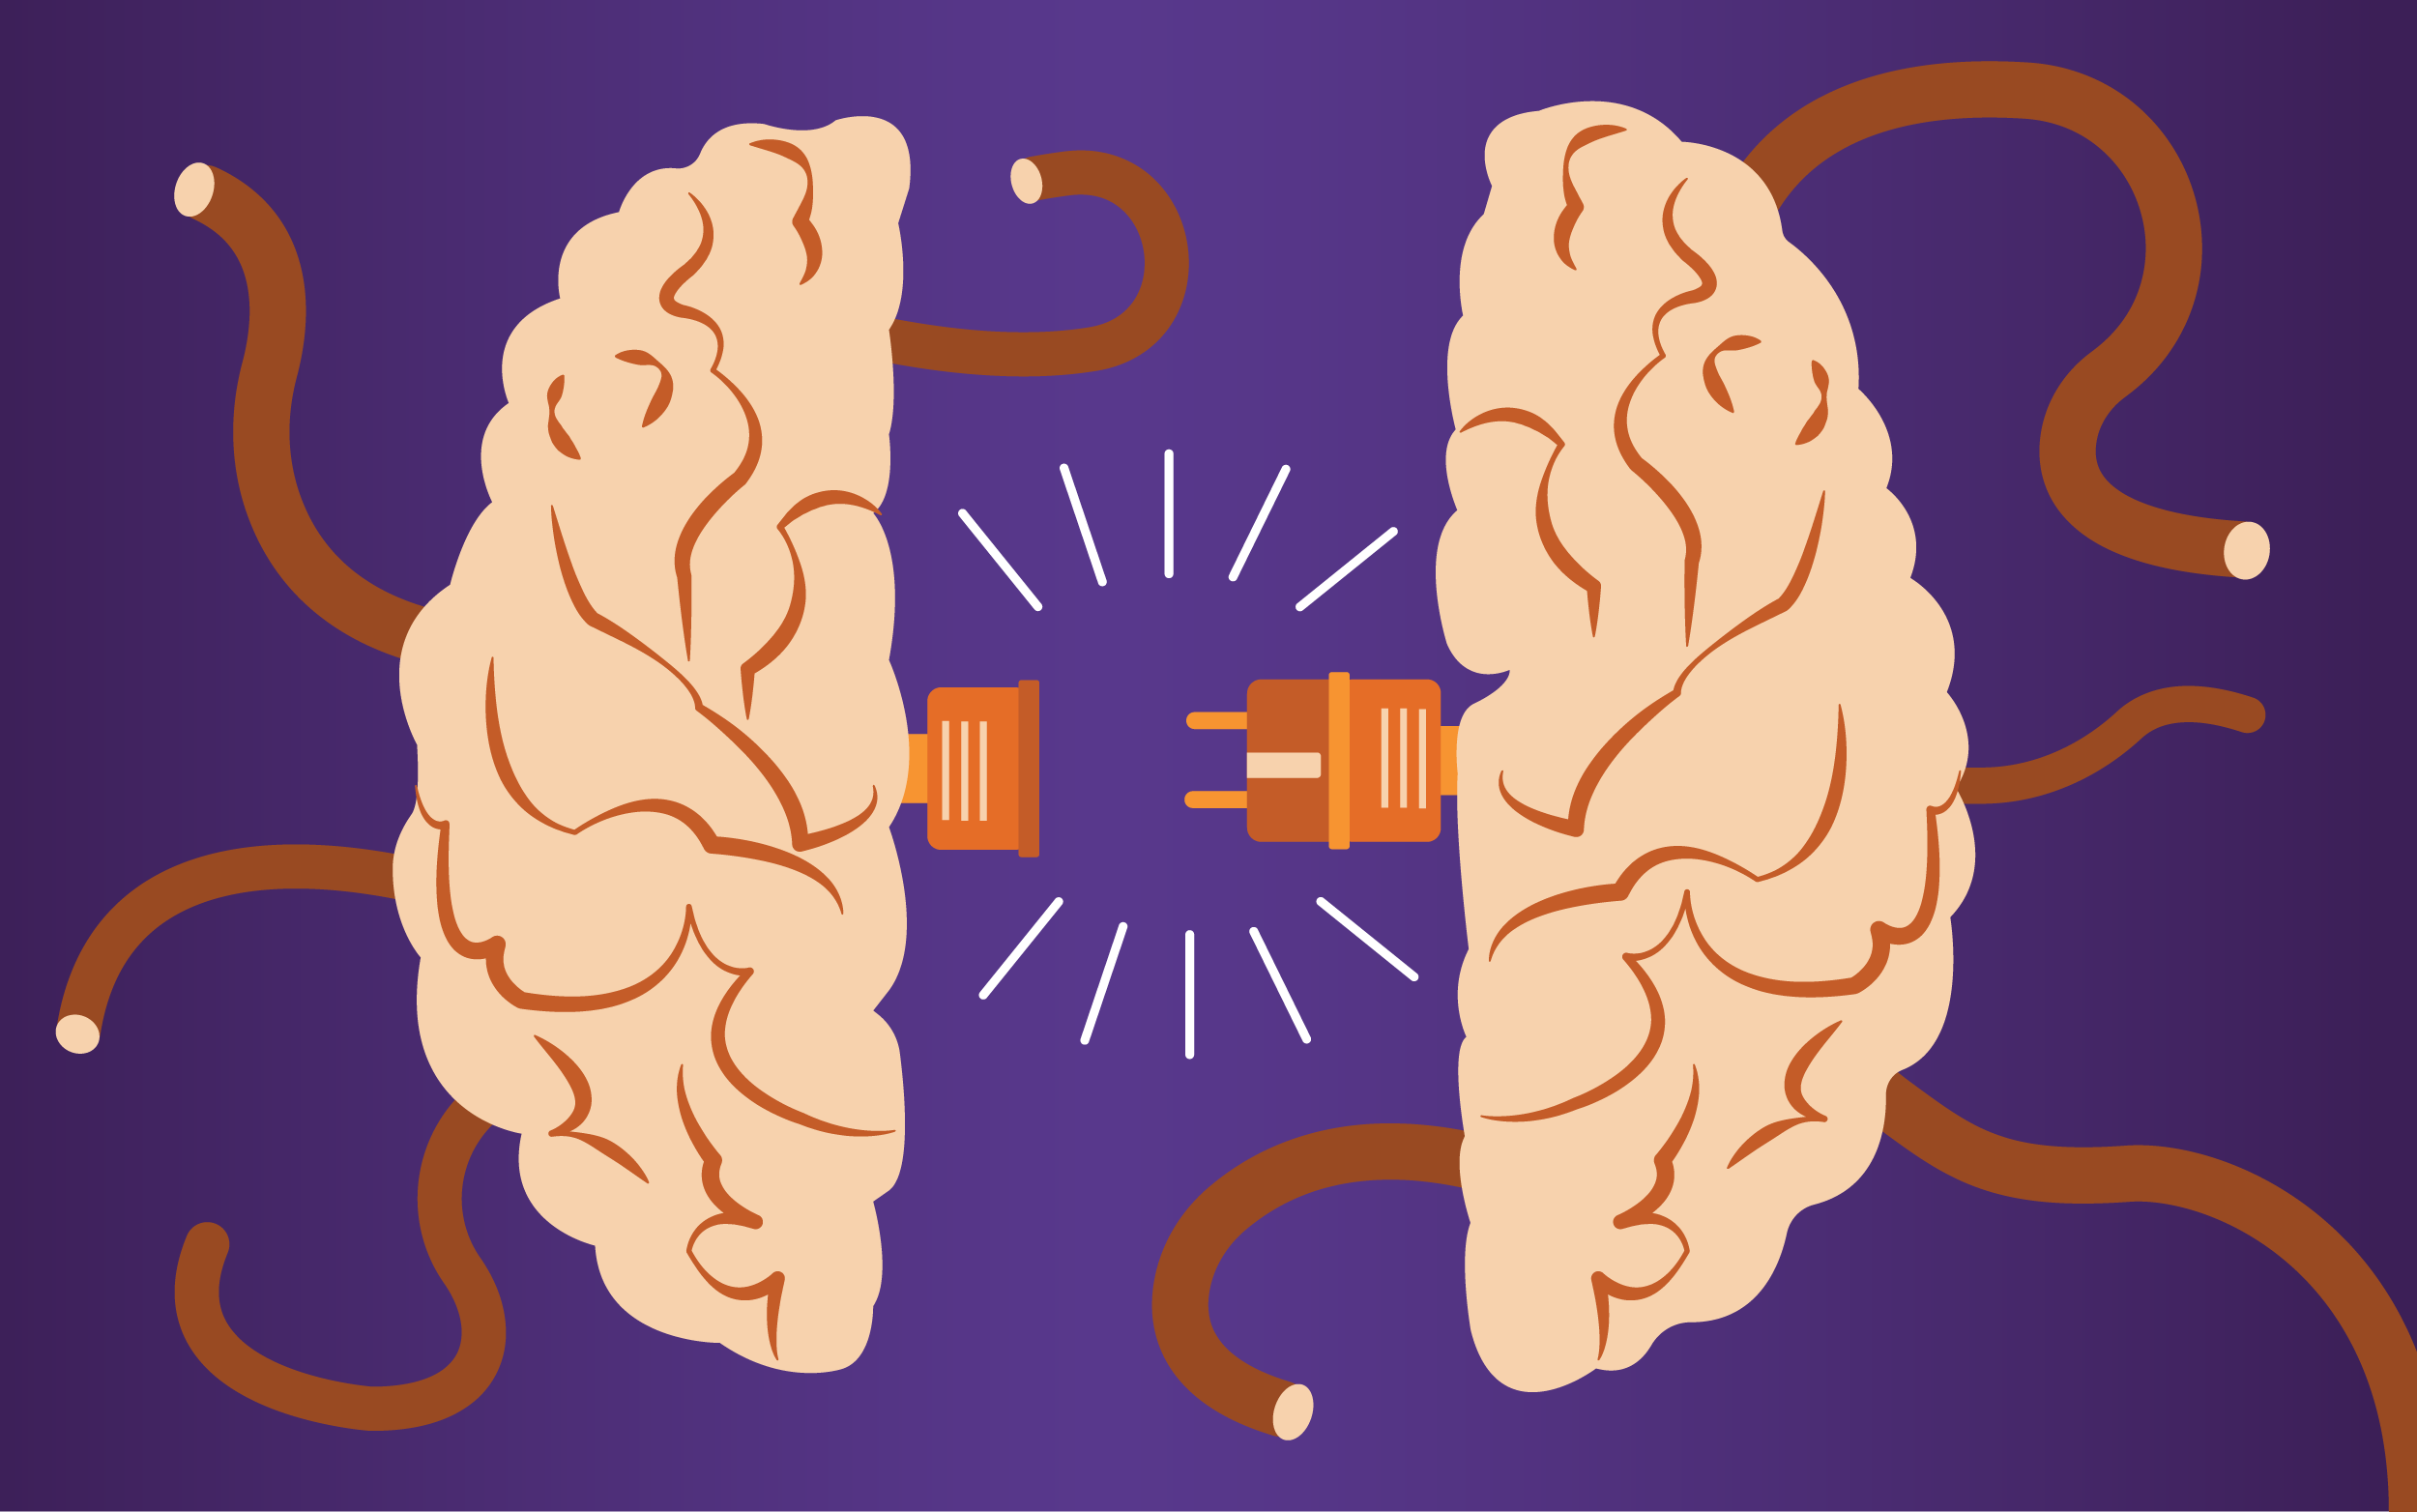 Illustration of two sides of a brain with a power plug connecting them.